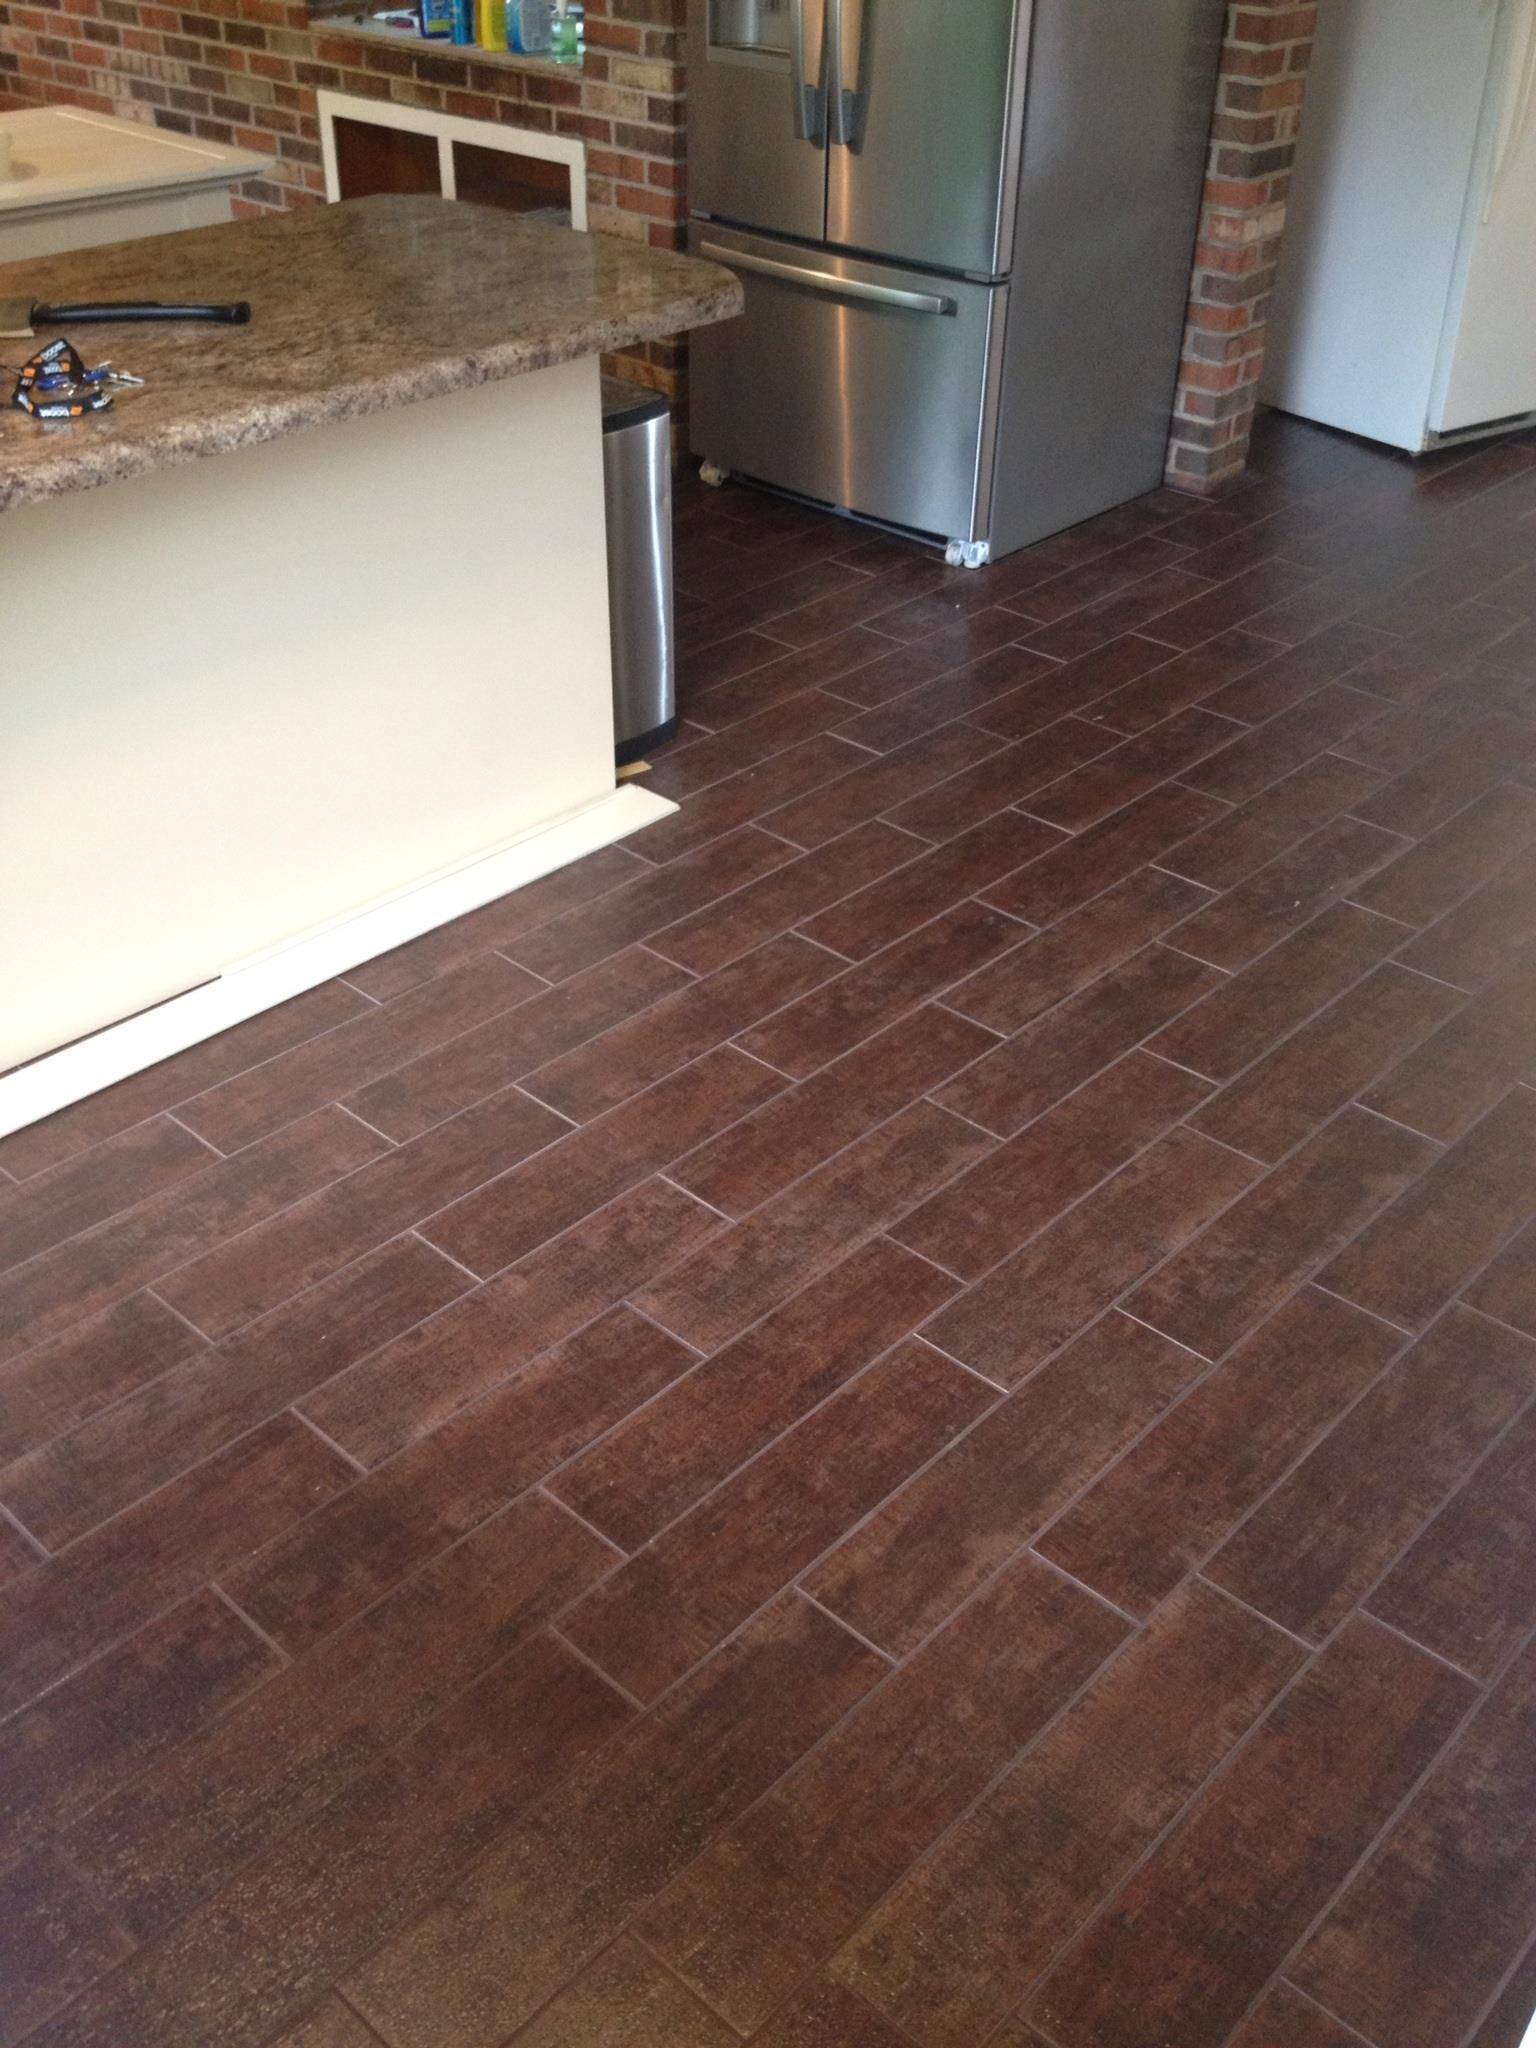 Wood Look Porcelain In Stock Everyday Prices Start At Only 99 Cents Per S F Flooring Wood Porcelain Tile